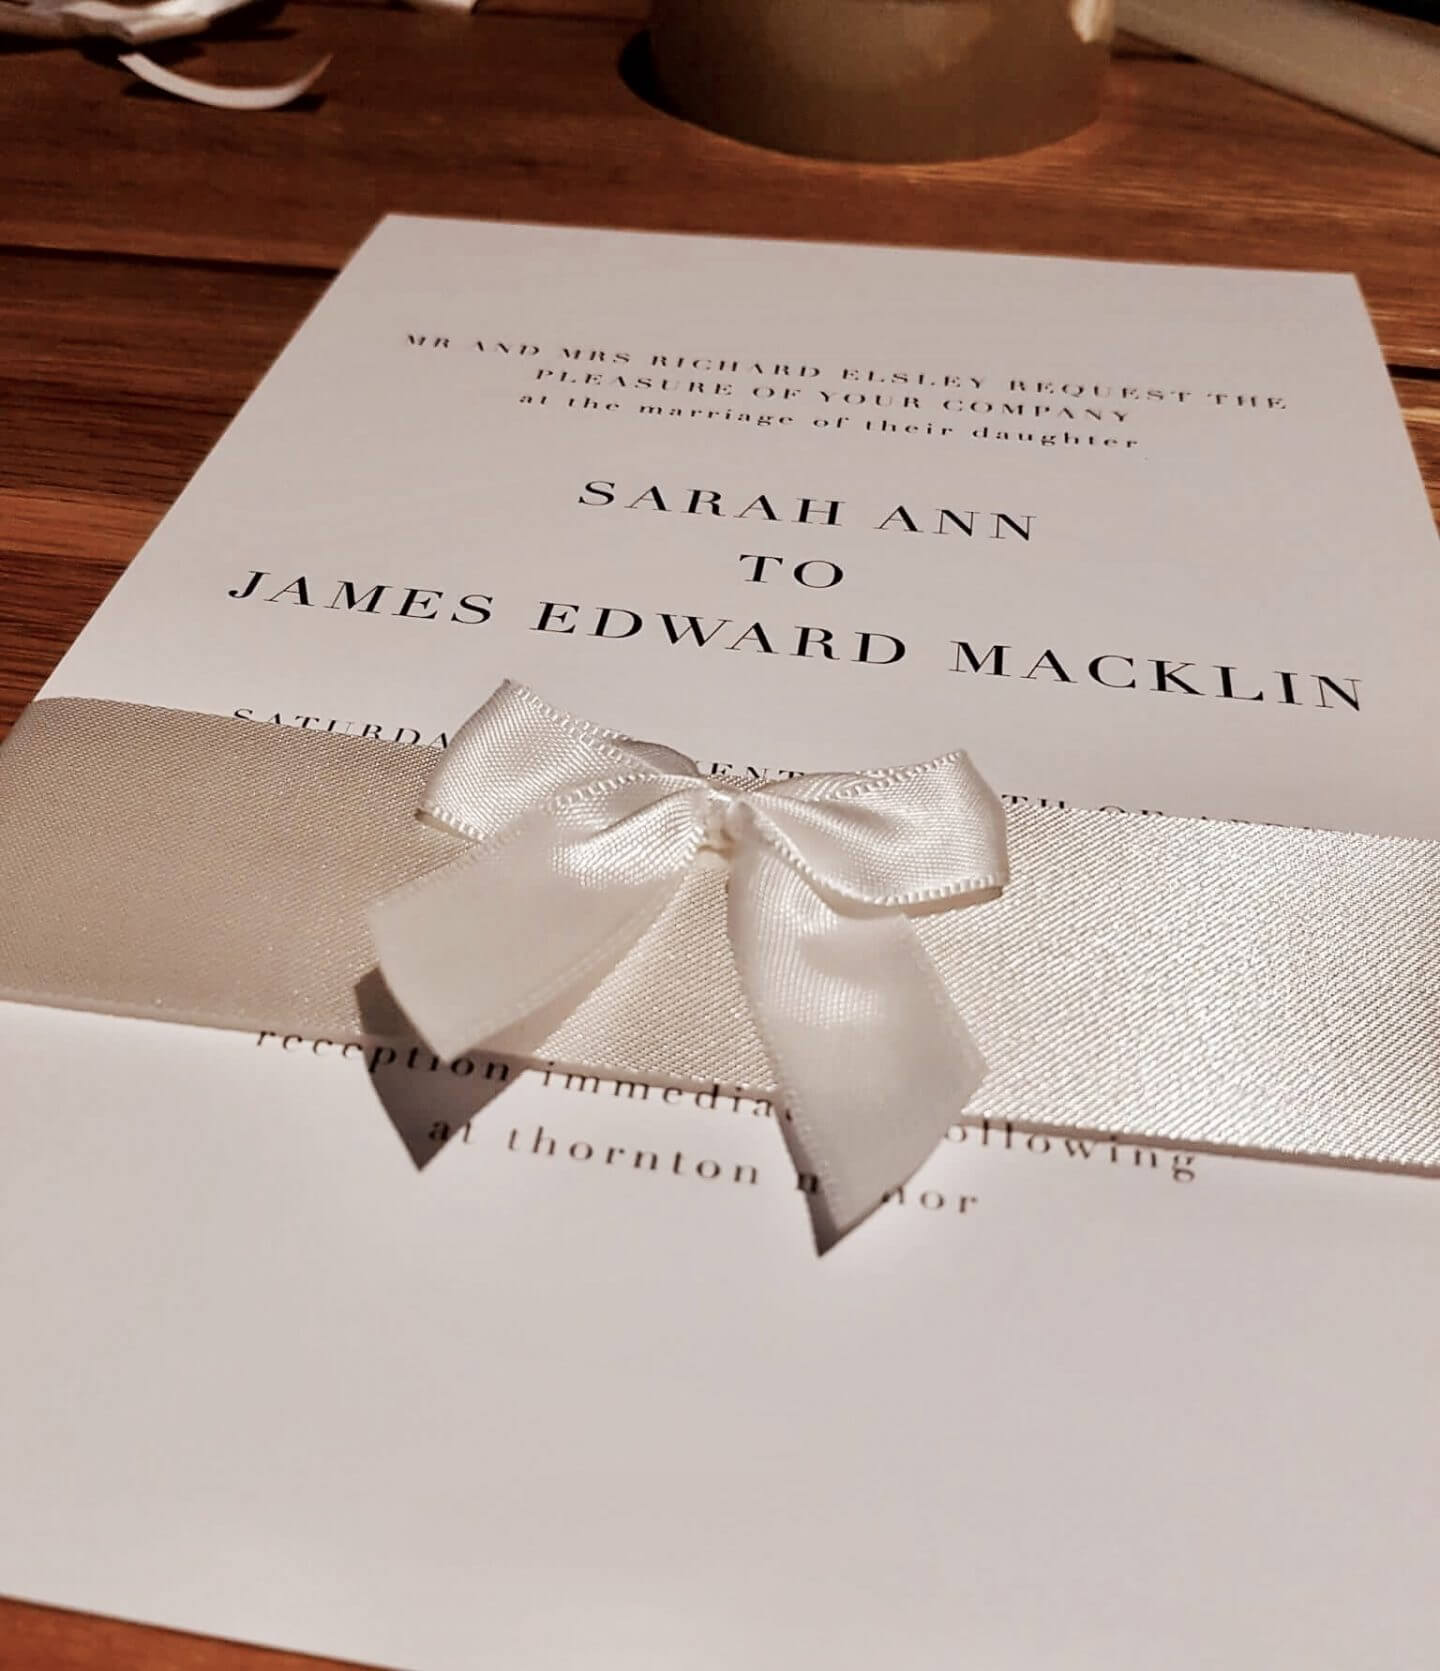 save money on your wedding by making your own invitations